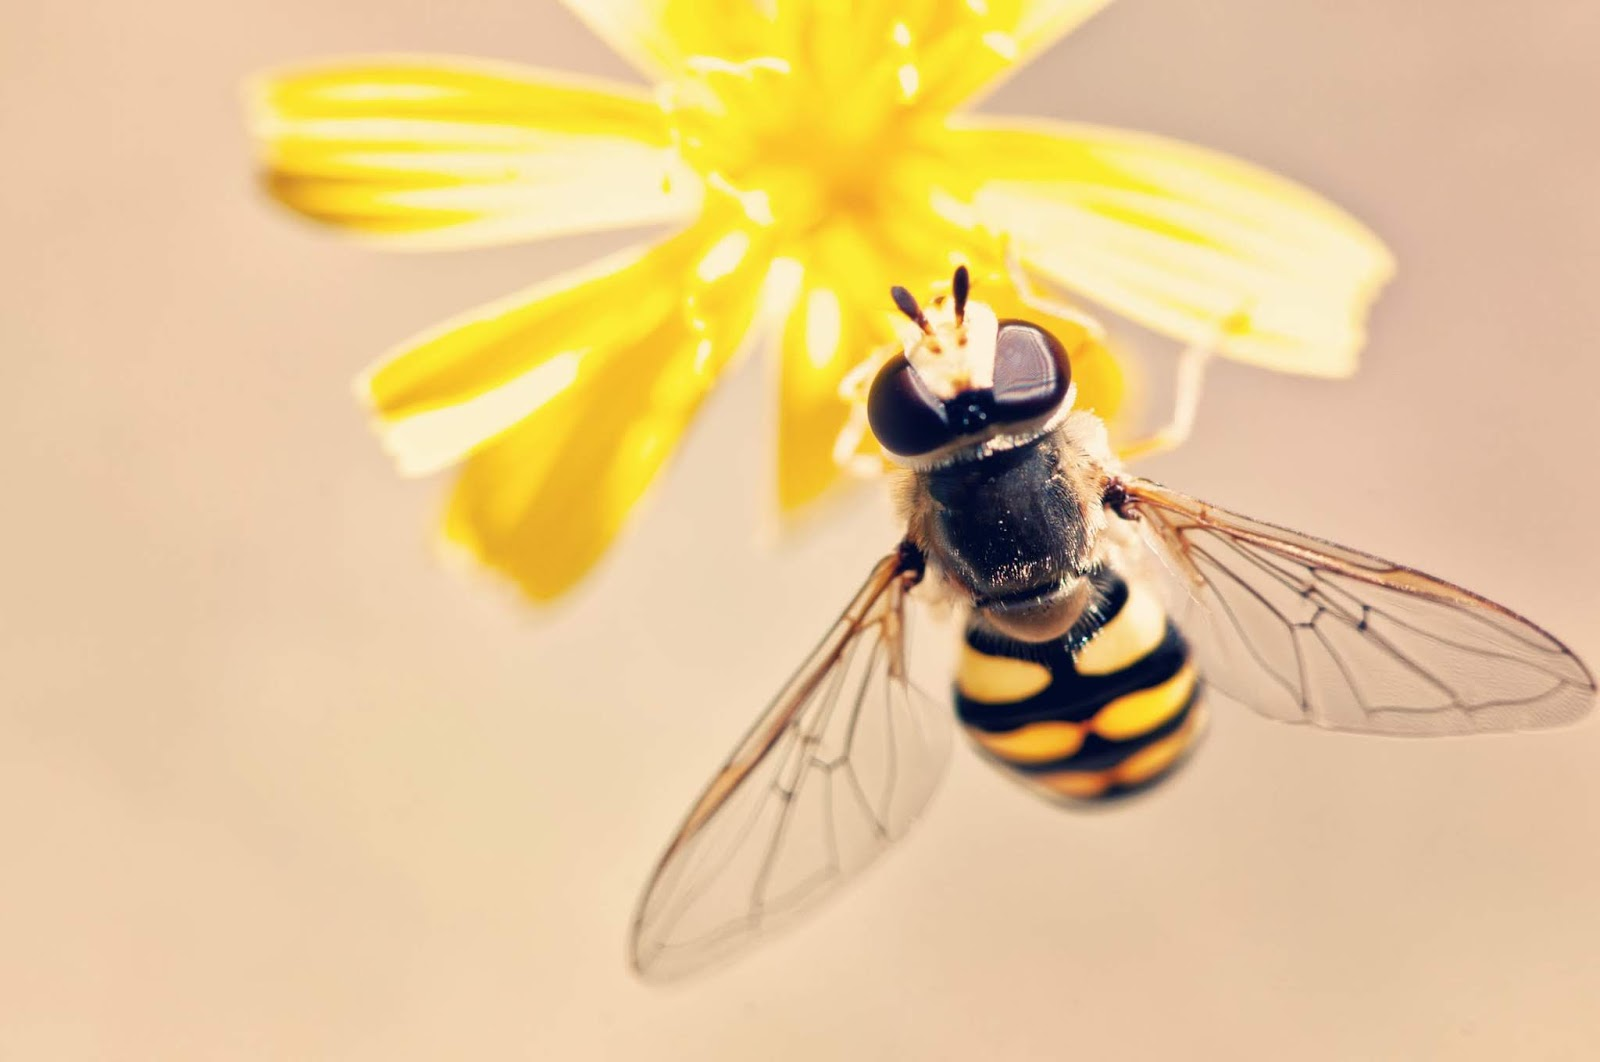 a wasp sitting on a yellow flower